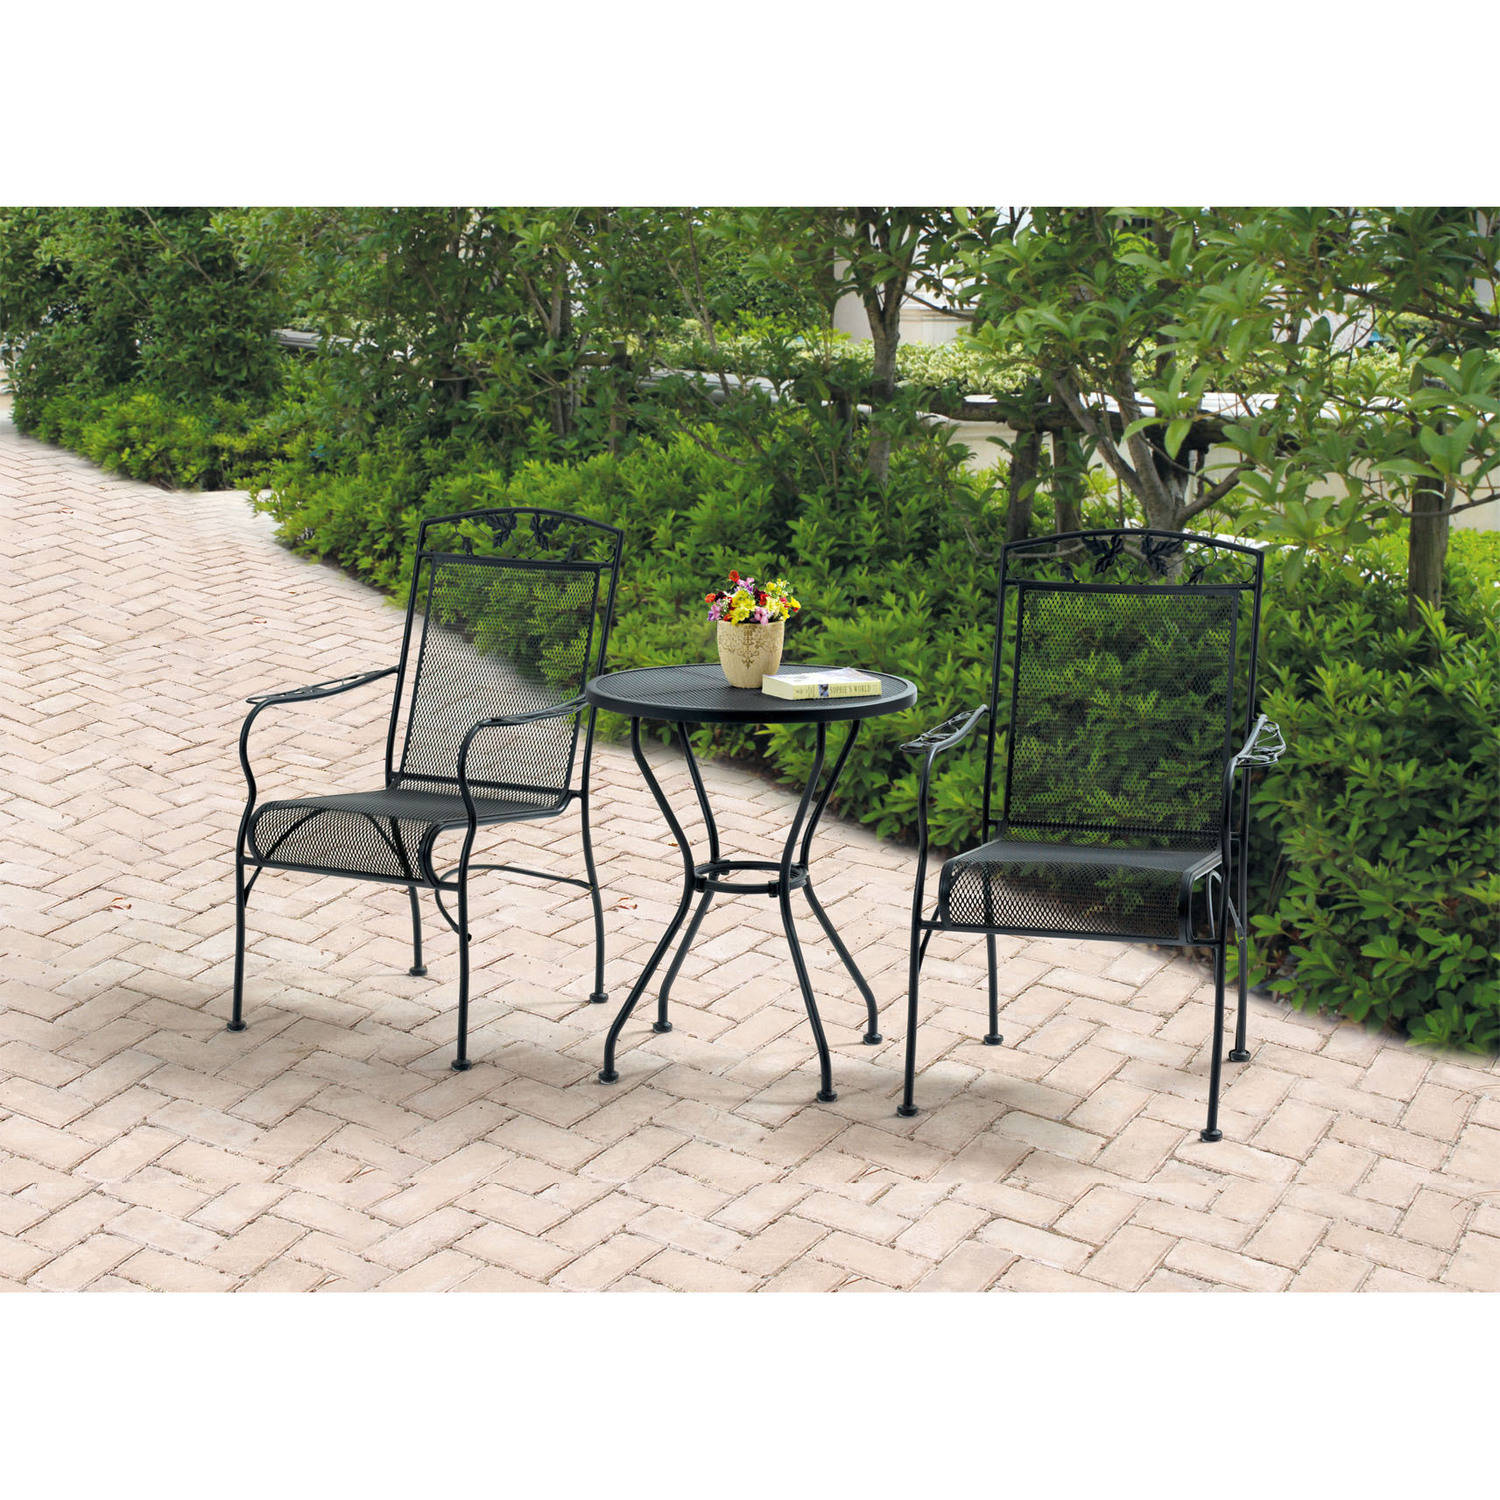 pedestal furniture for fresh dining table mid iron chairs patio outdoor century knoll wrought